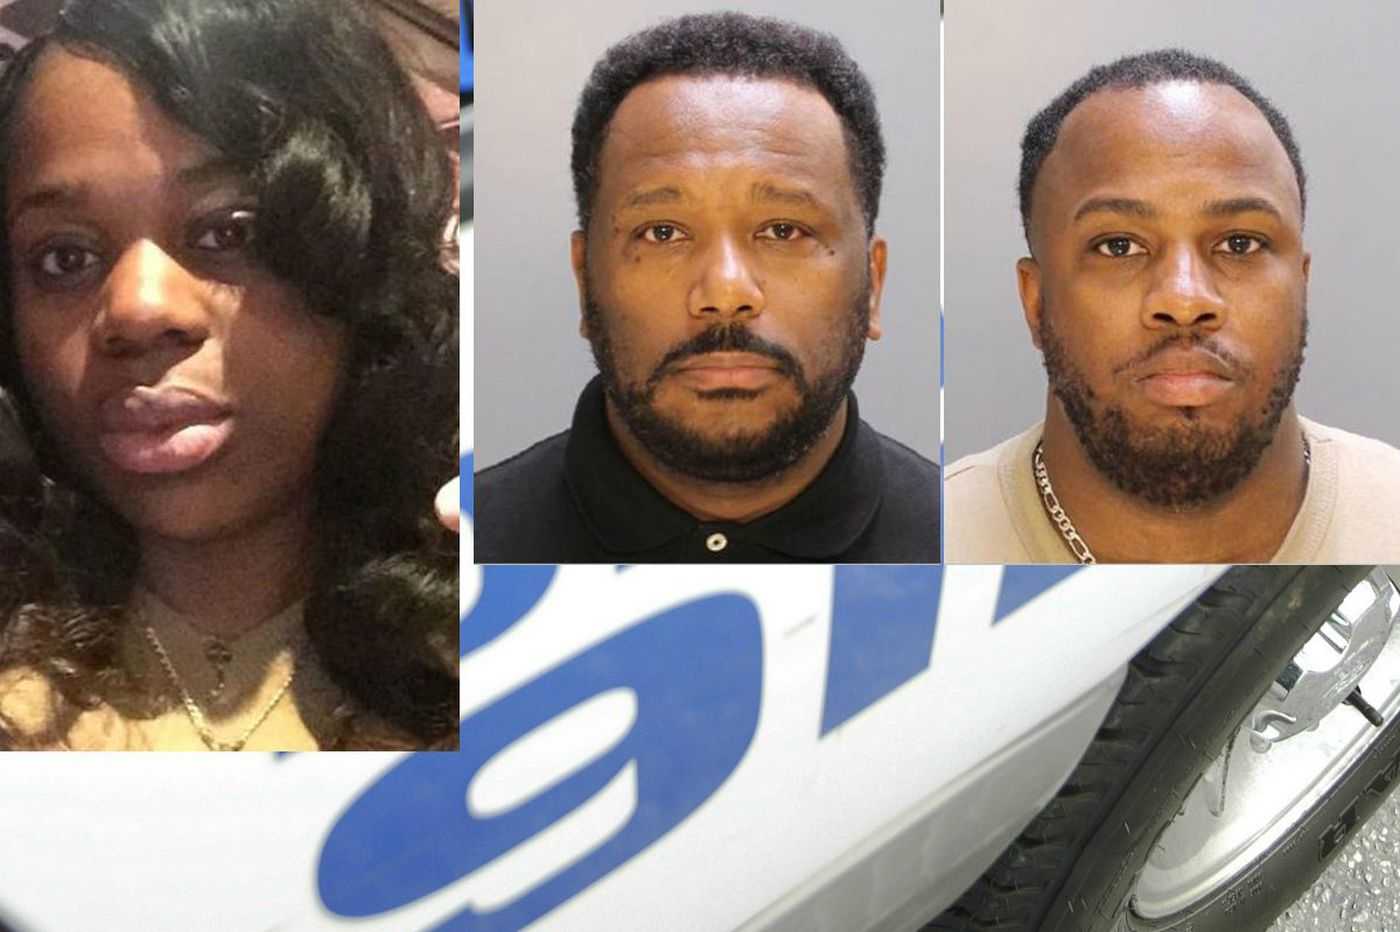 At murder trial, girl, 12, alleges beatings by 2 ex-Temple cops in Germantown home